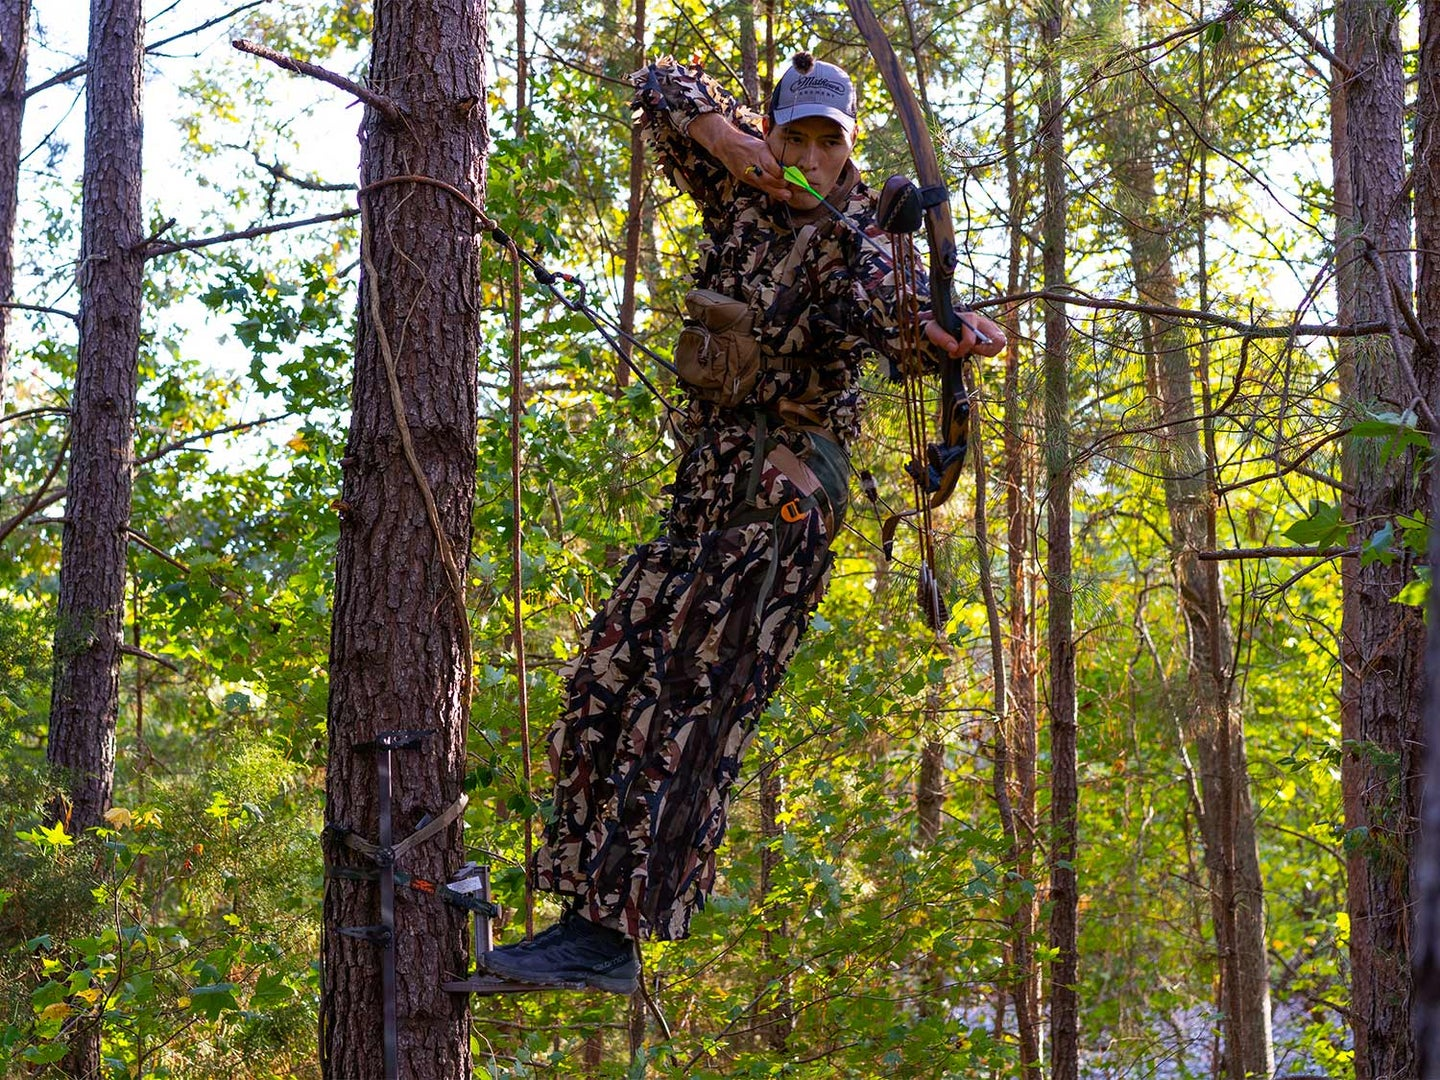 hunter shooting a bow and arrow from a tree saddle stand